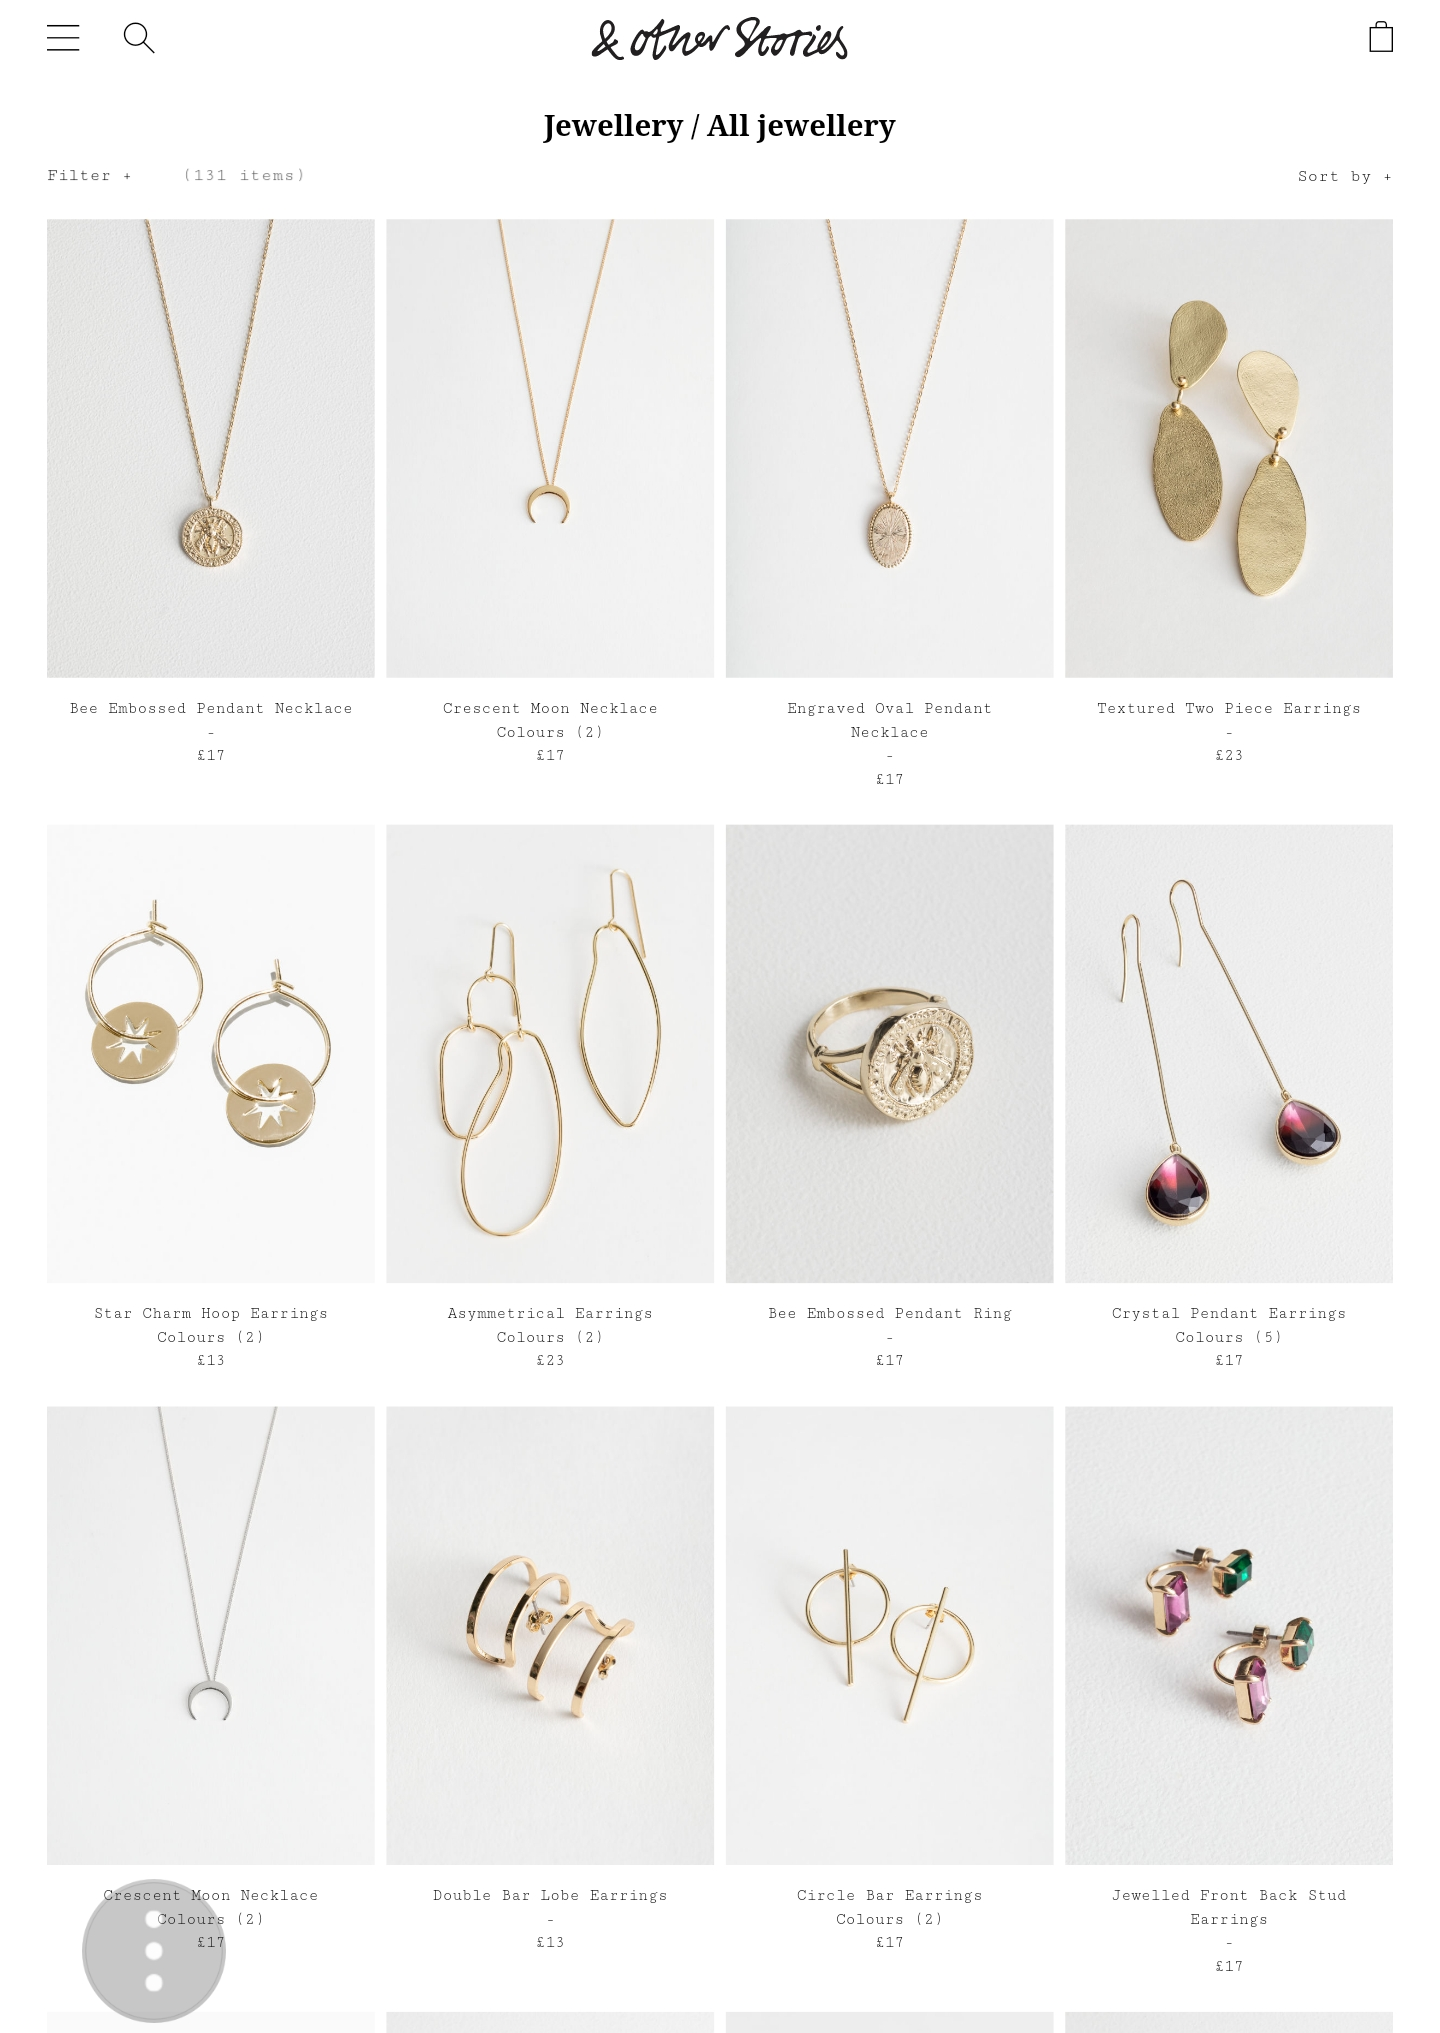 Top place to buy cheap jewelry and affordable jewellery from. Low-priced jewellery for the simple jewelry lovers and bold jewelry. Budget-friendly jewellery for all. Your affordable jewelry gift guide. Gift guide for her. Stocking stuffers for her. Christmas gift guide for everyone. Simple and classic affordable jewelry